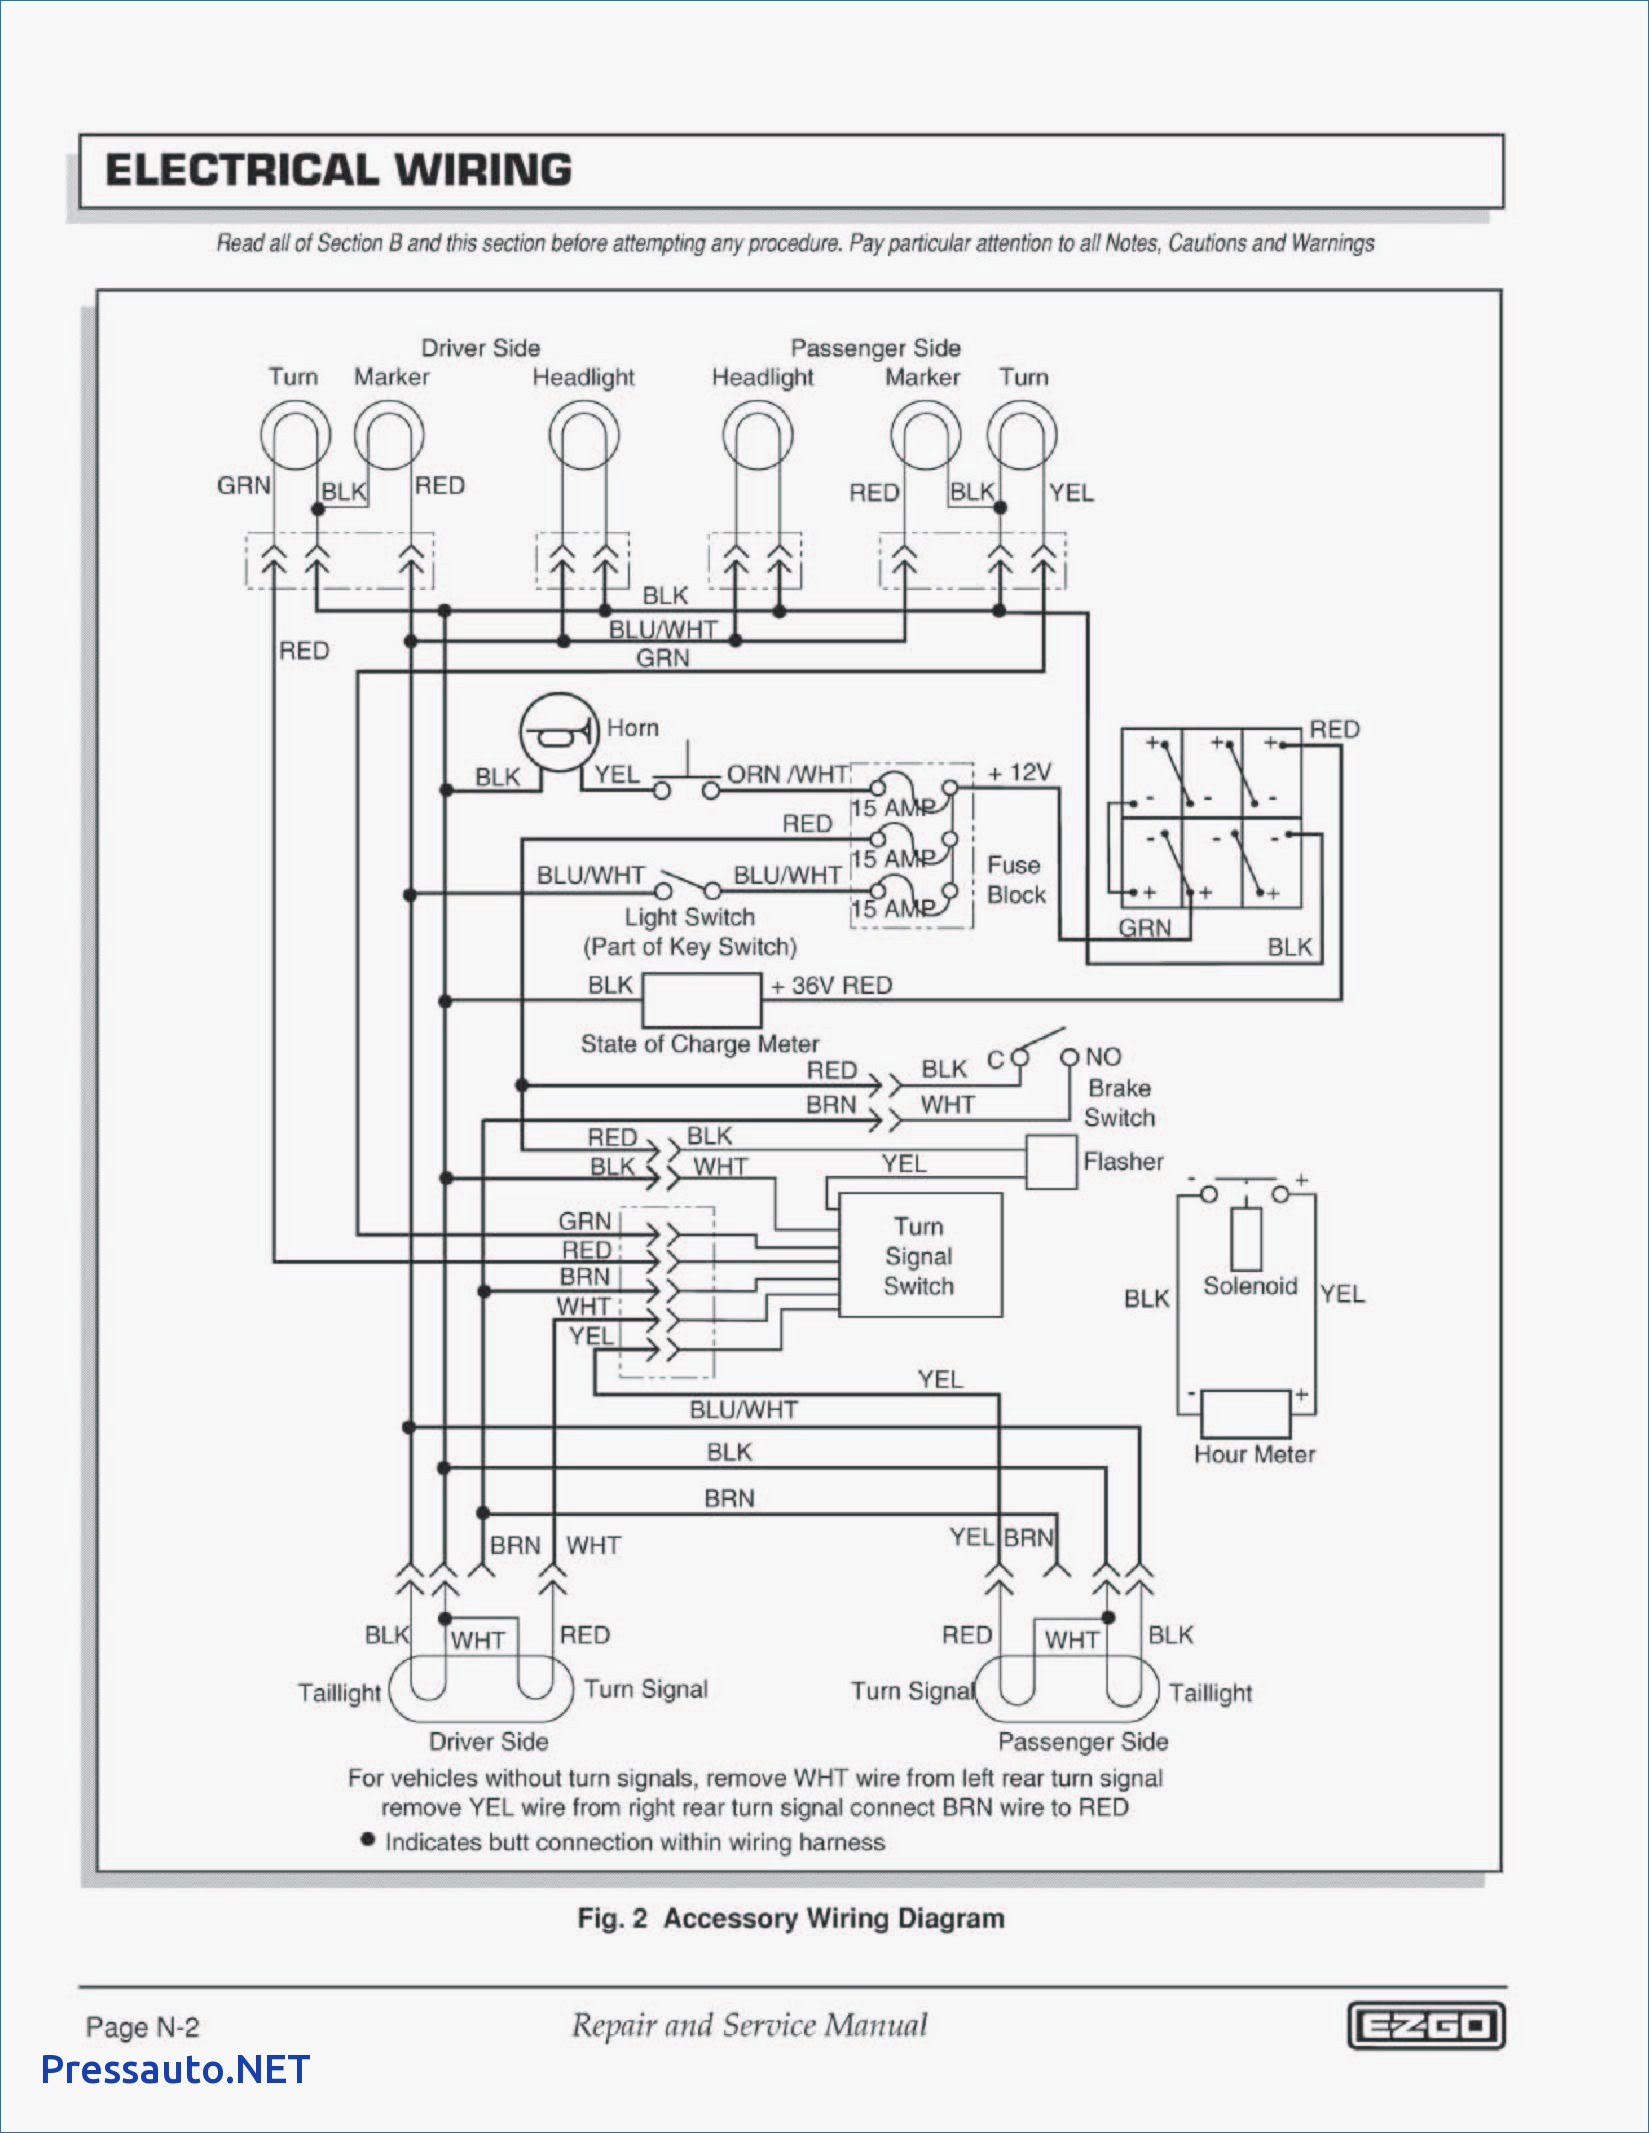 110 Volt Wiring Diagram Manual Guide